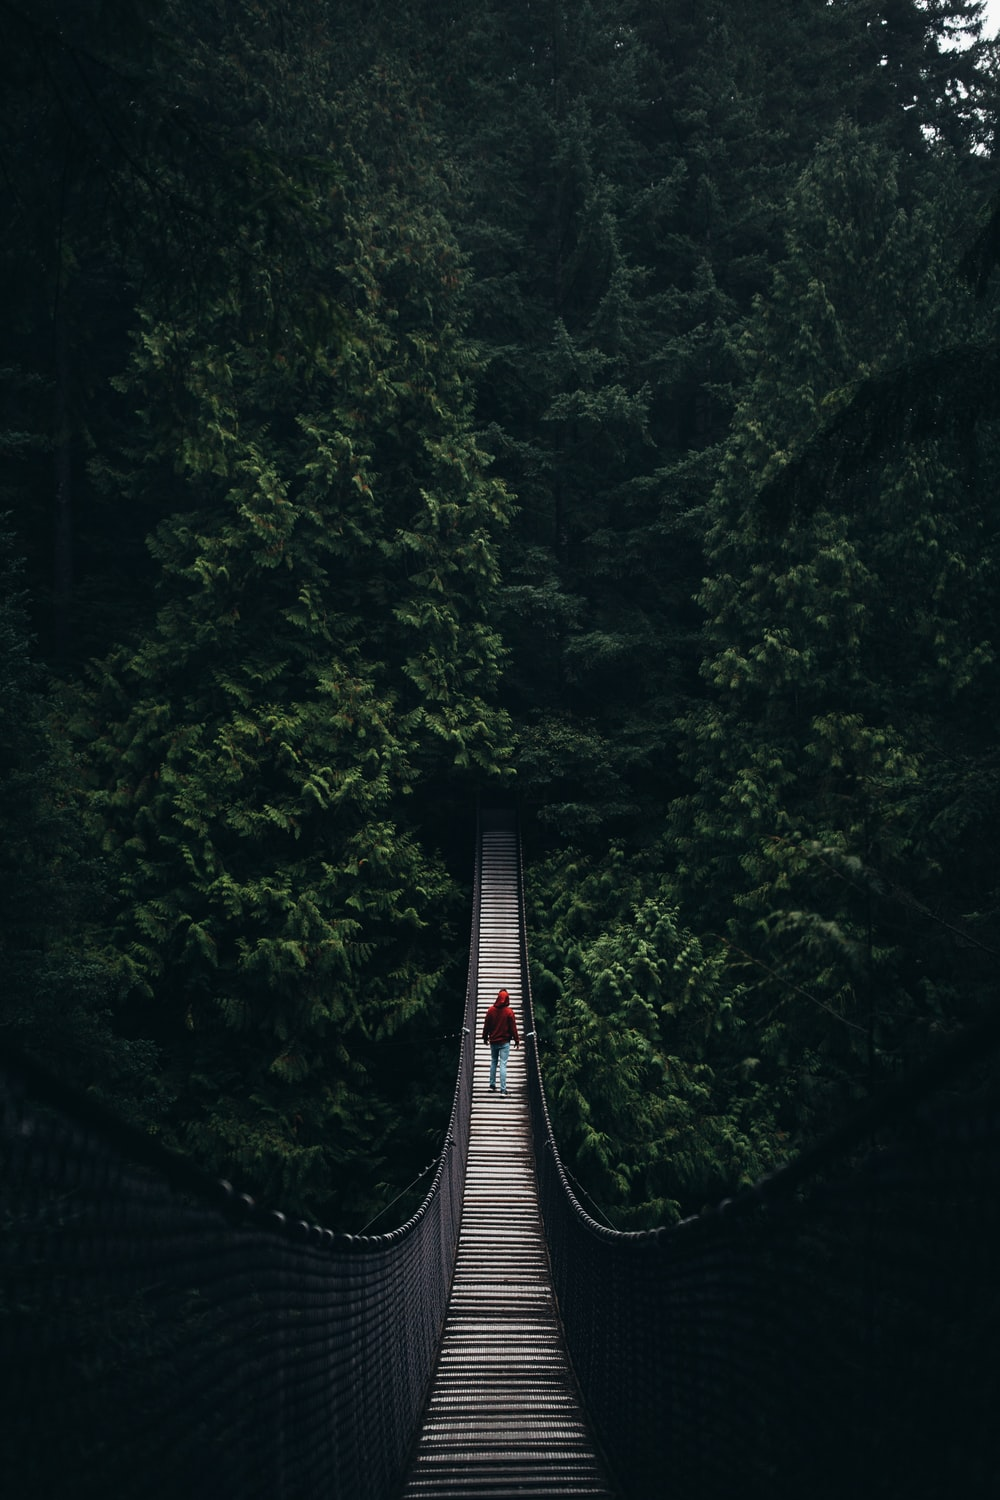 woman walking on hanging bridge surrounded by trees